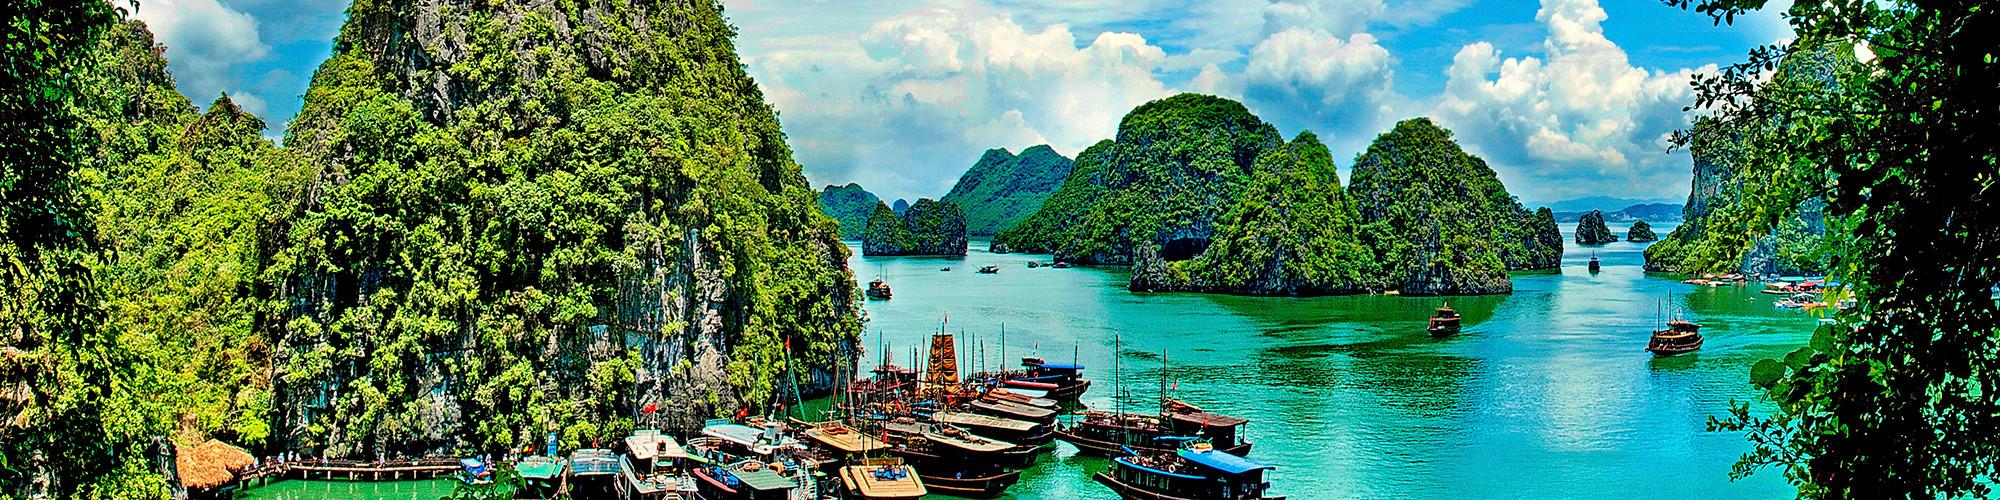 Vietnam September 2020 Tours & Trips